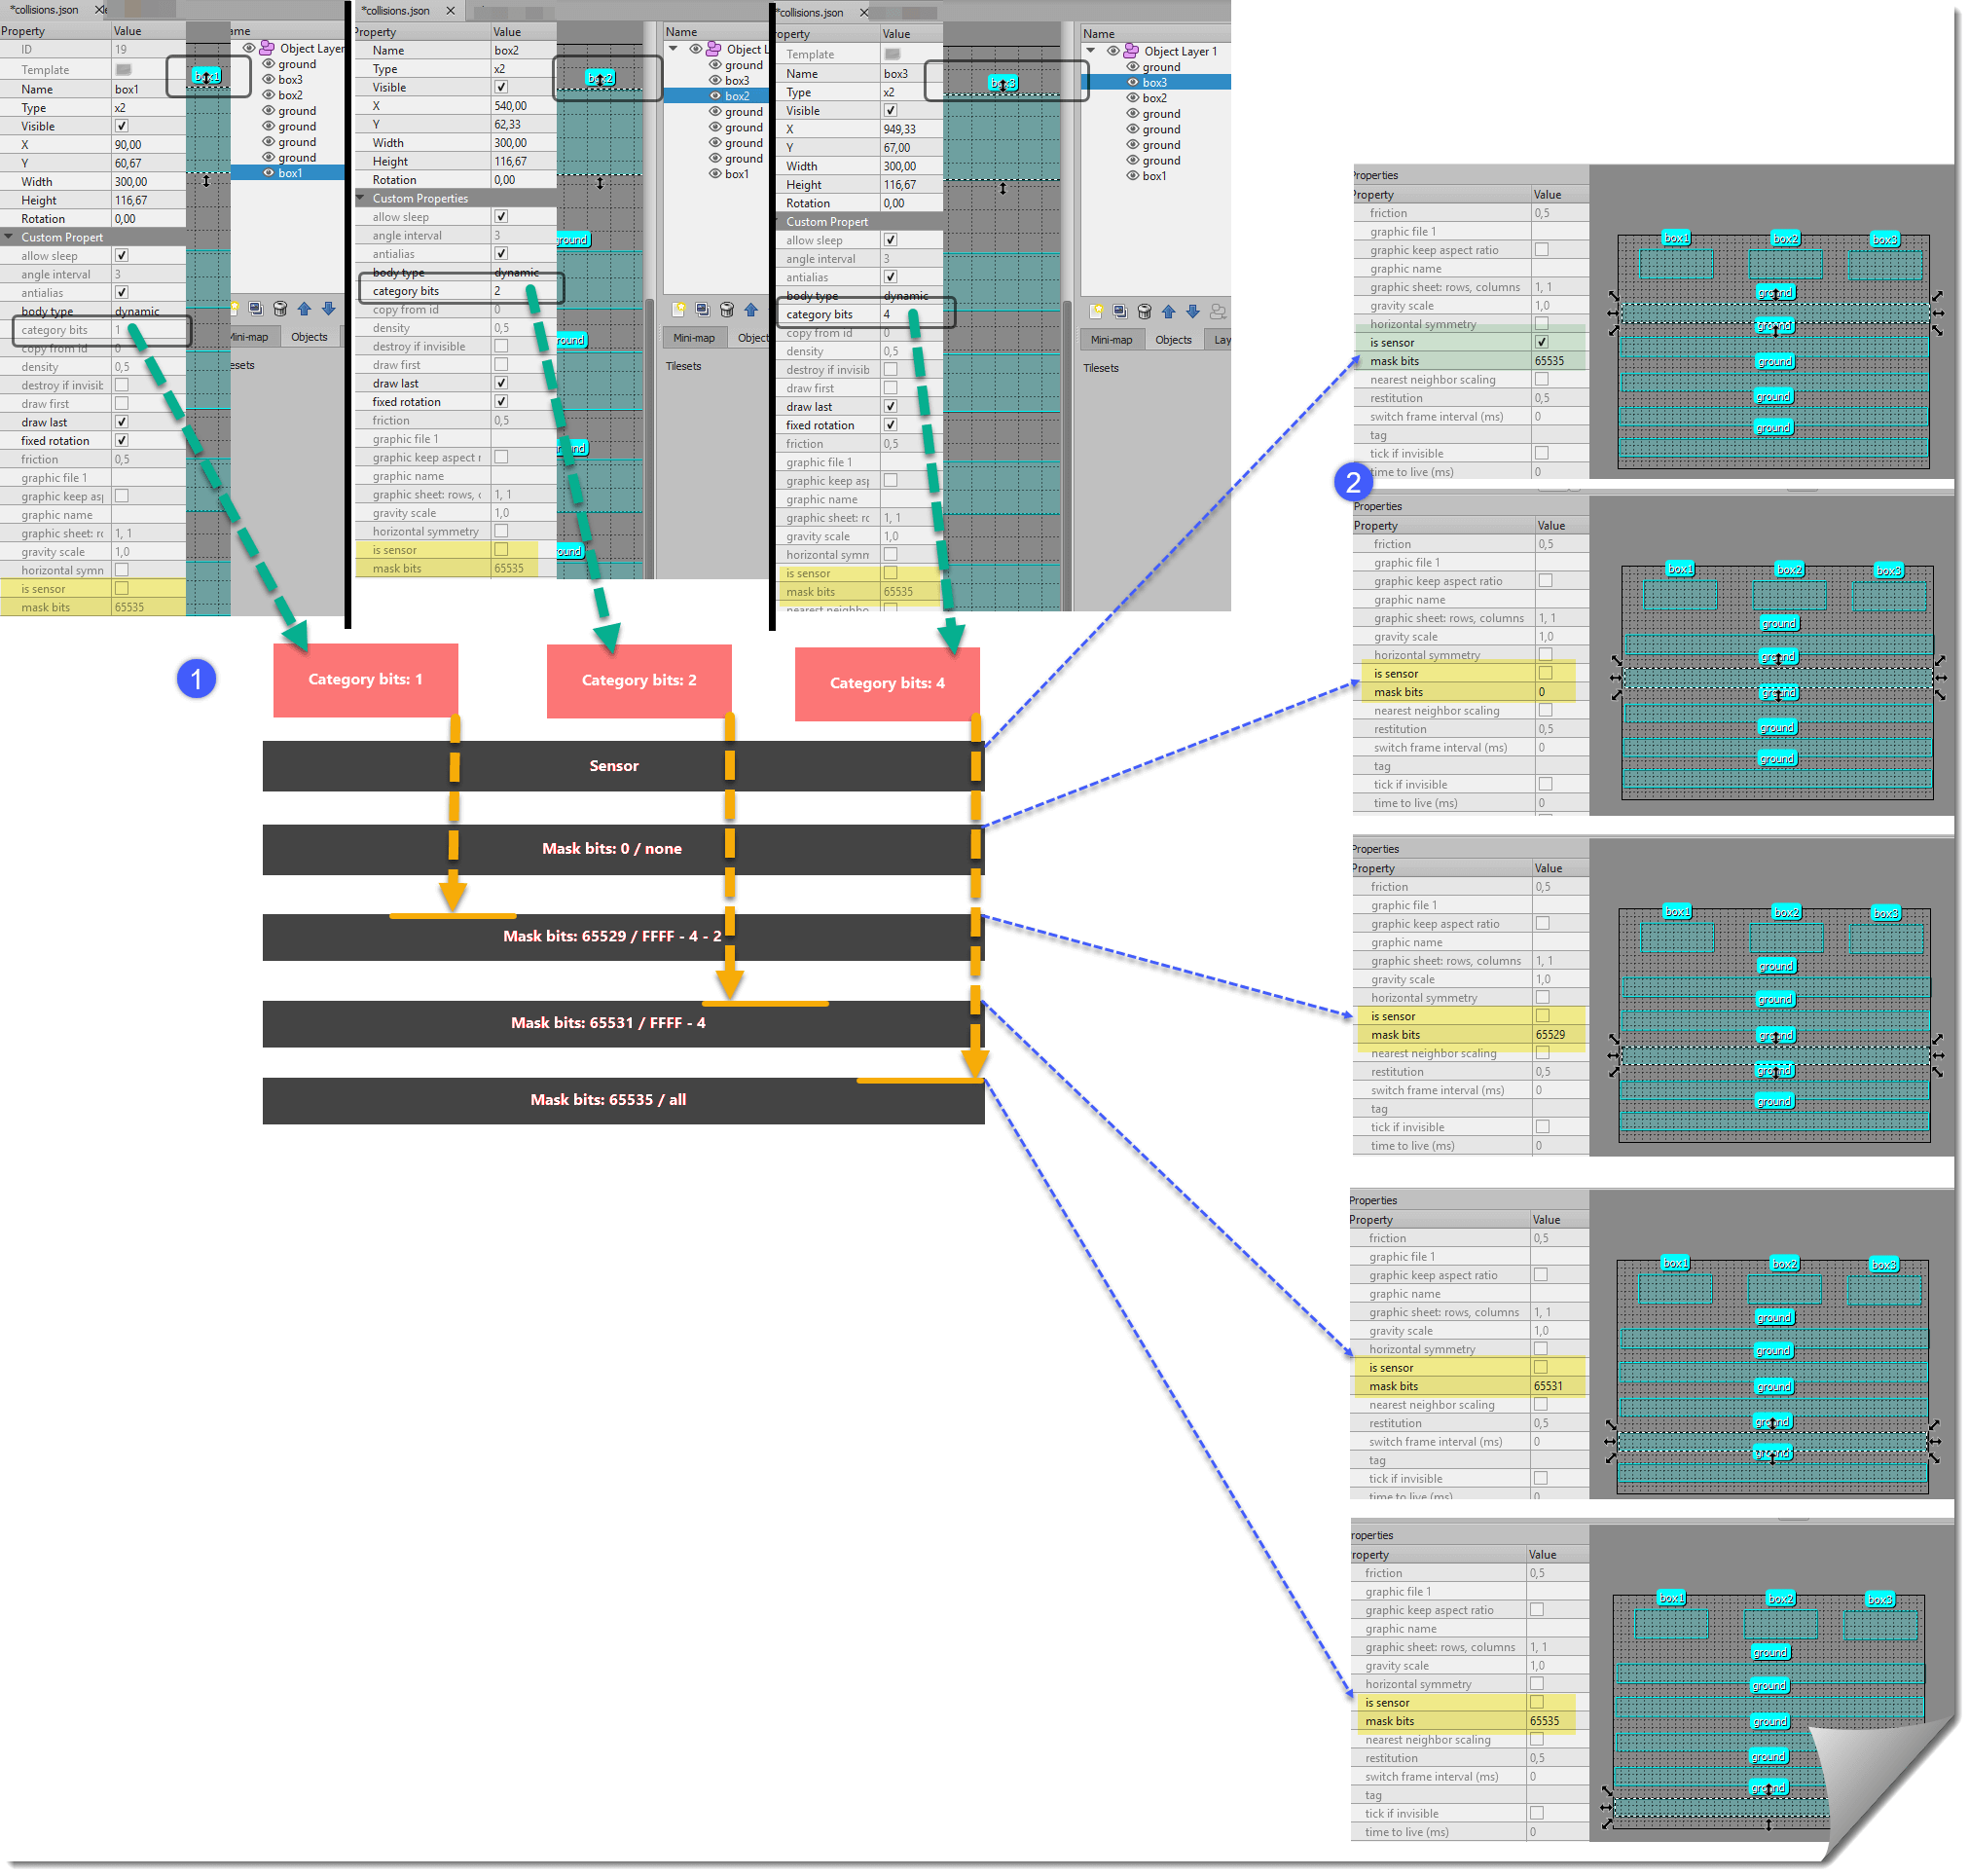 Games - Some notes to better understand the XUI2D examples